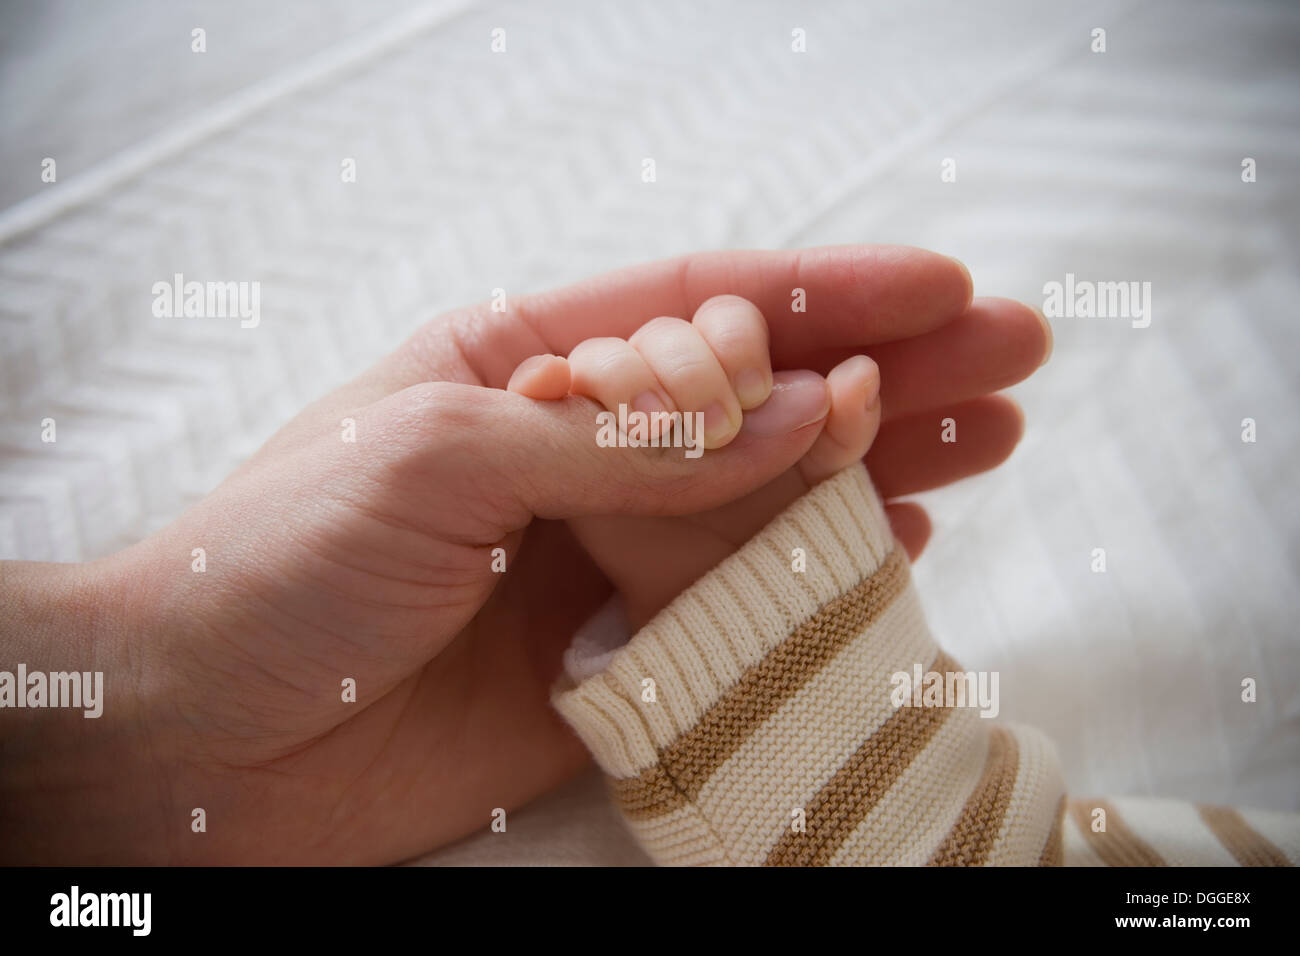 Baby boy holding mother's hand, close up - Stock Image